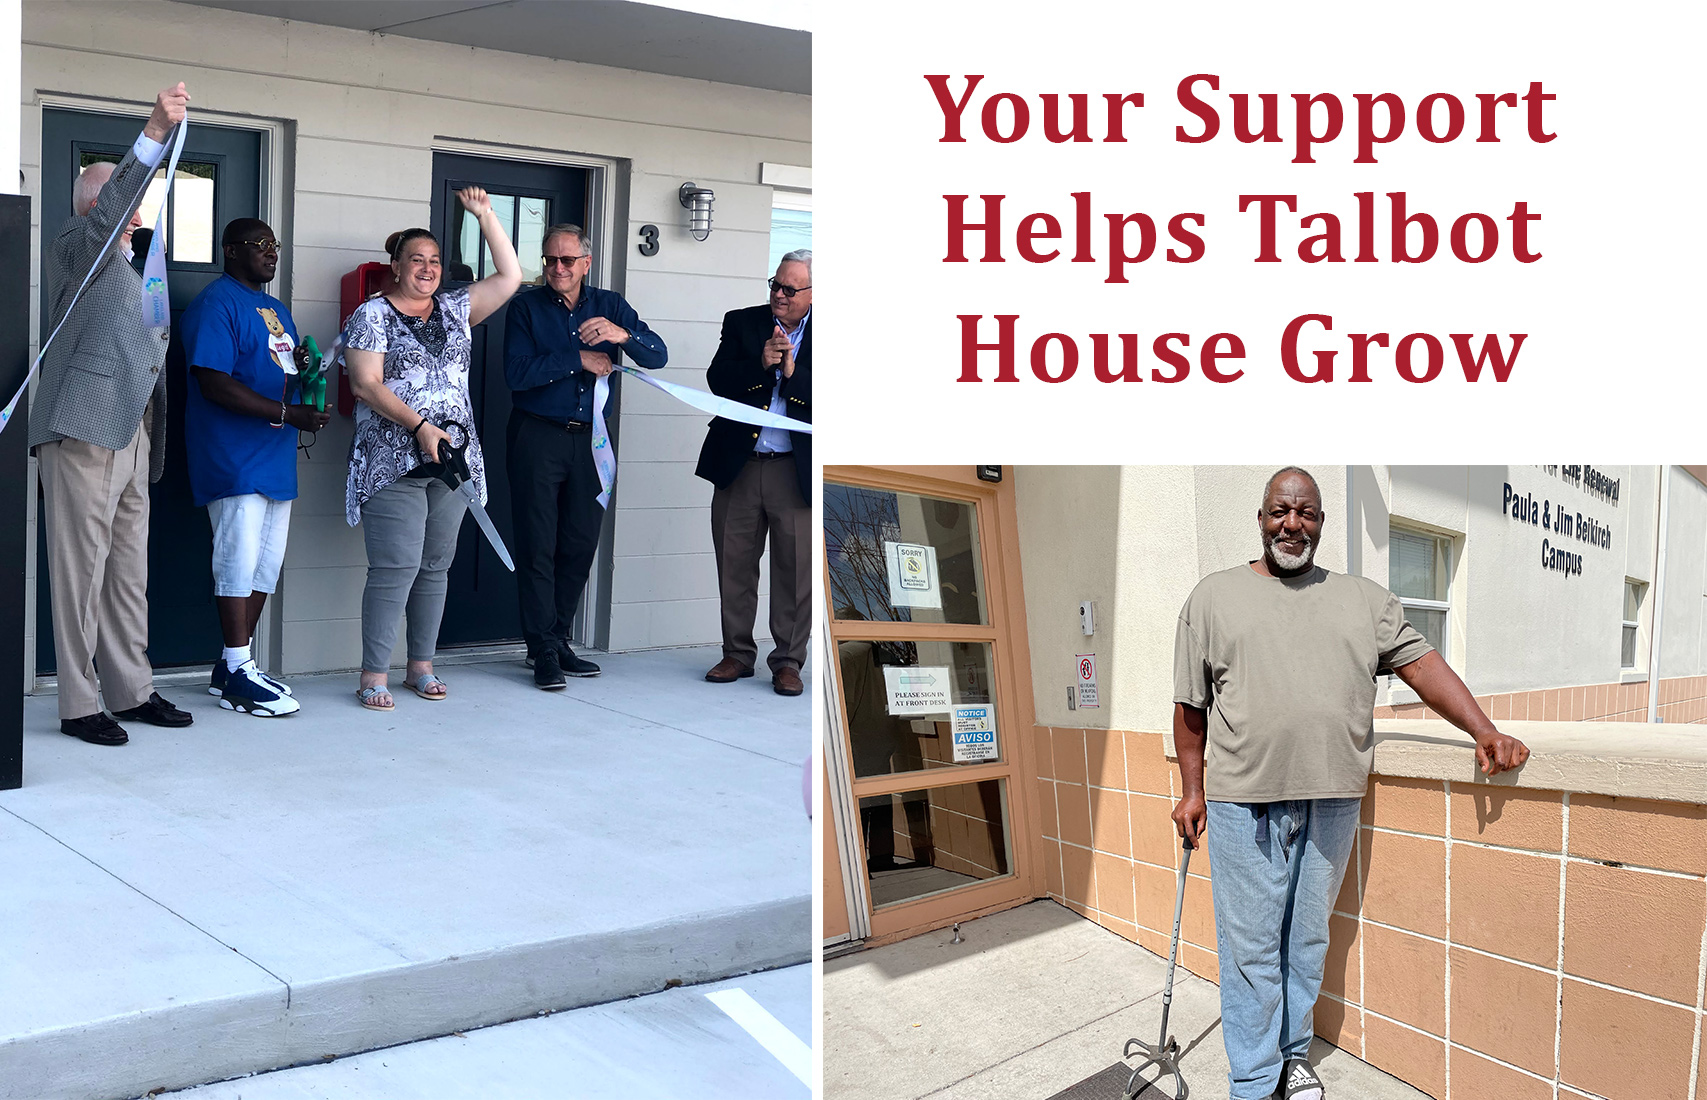 Your Support Helps Talbot House Grow